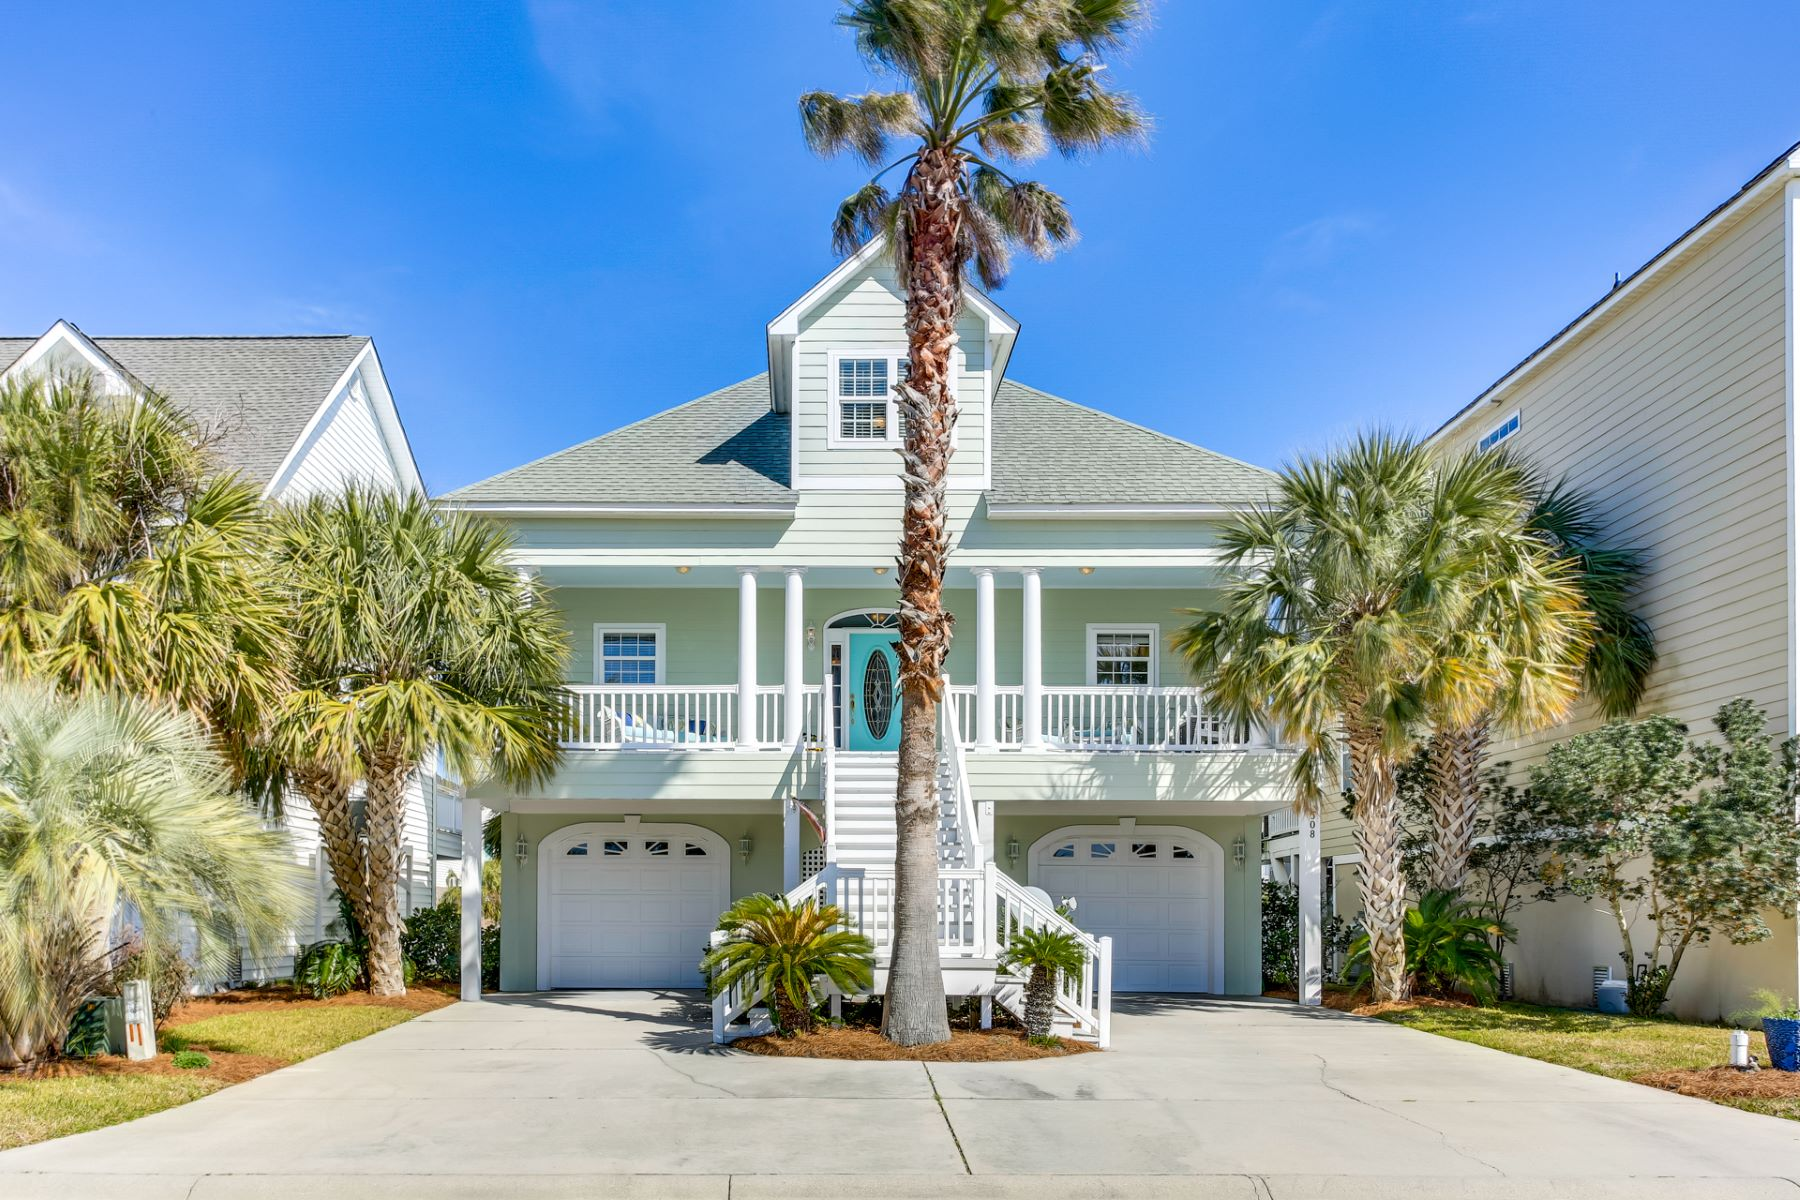 Single Family Homes のために 売買 アット Captivating Waterfront Home 508 54th Avenue, North Myrtle Beach, サウスカロライナ 29583 アメリカ